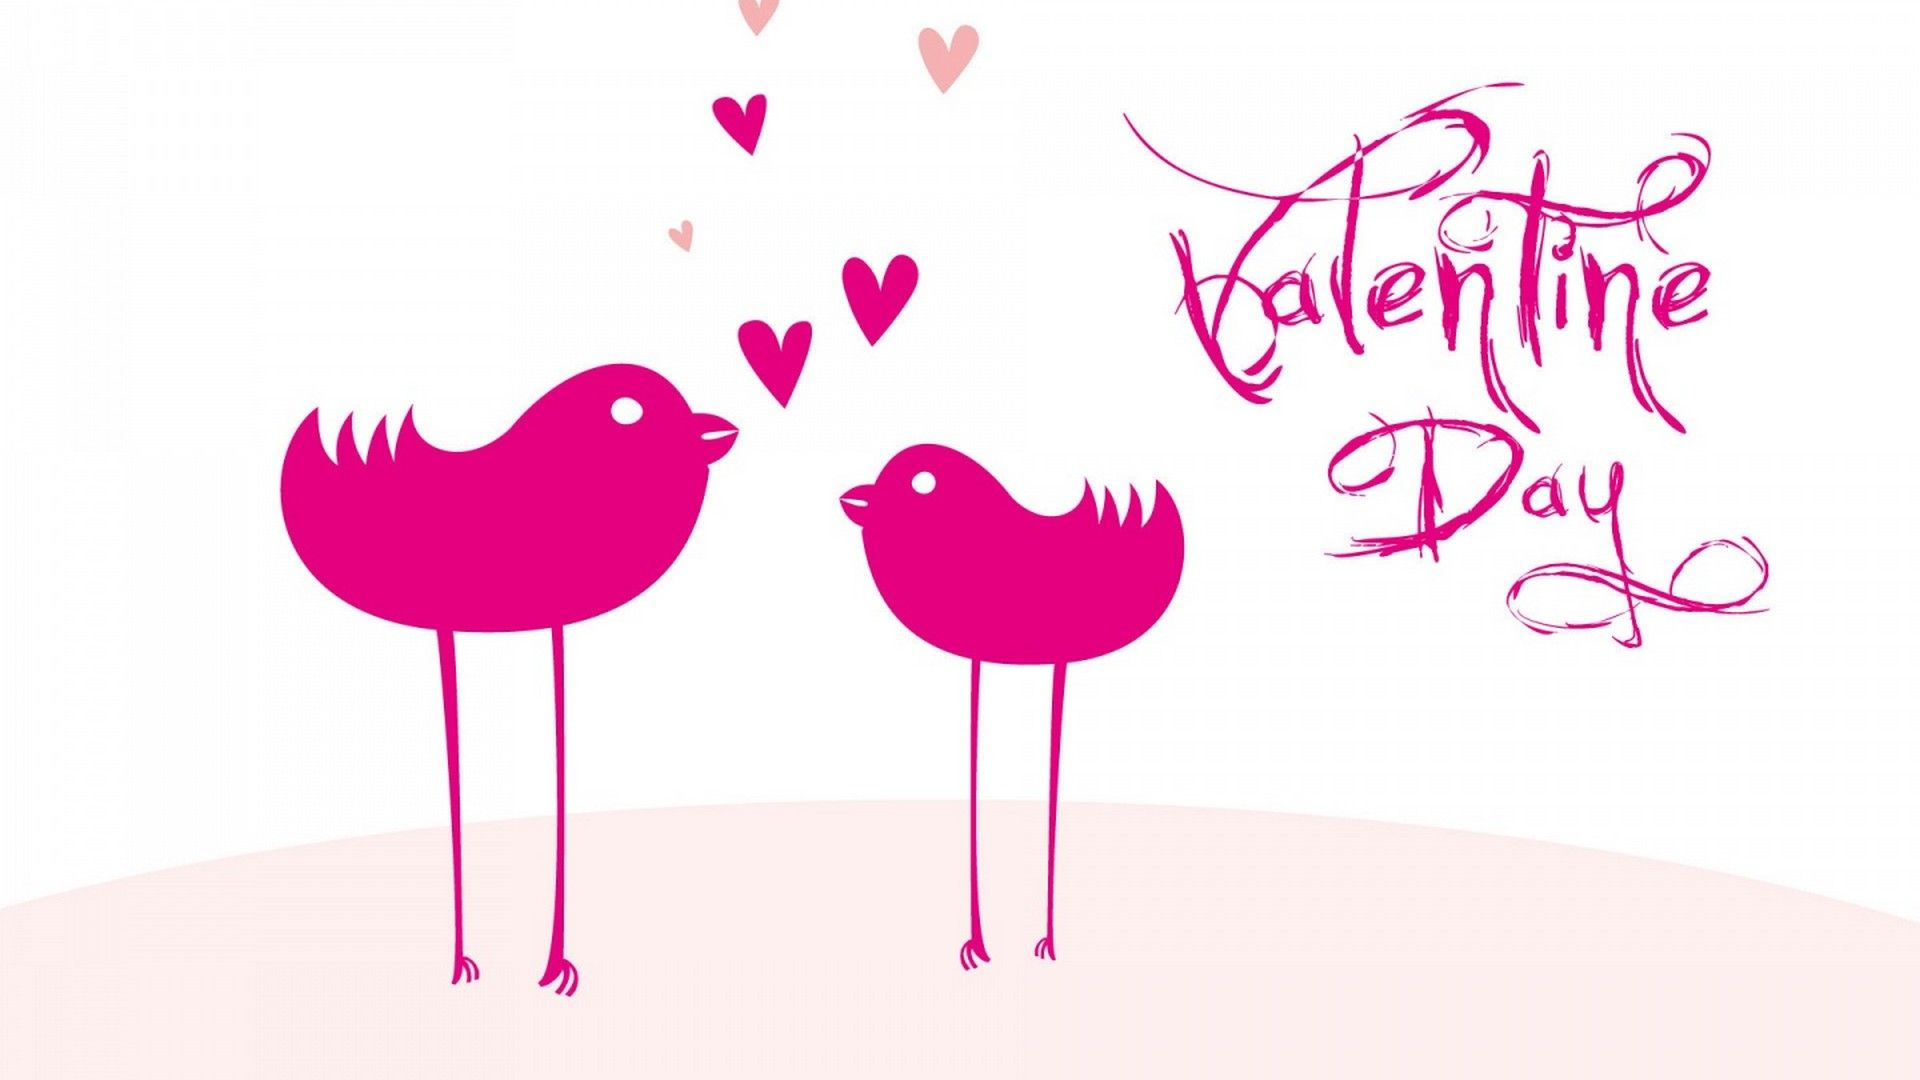 Cute Valentine Day Wallpaper Best Hd Wallpapers Wallpaperscute